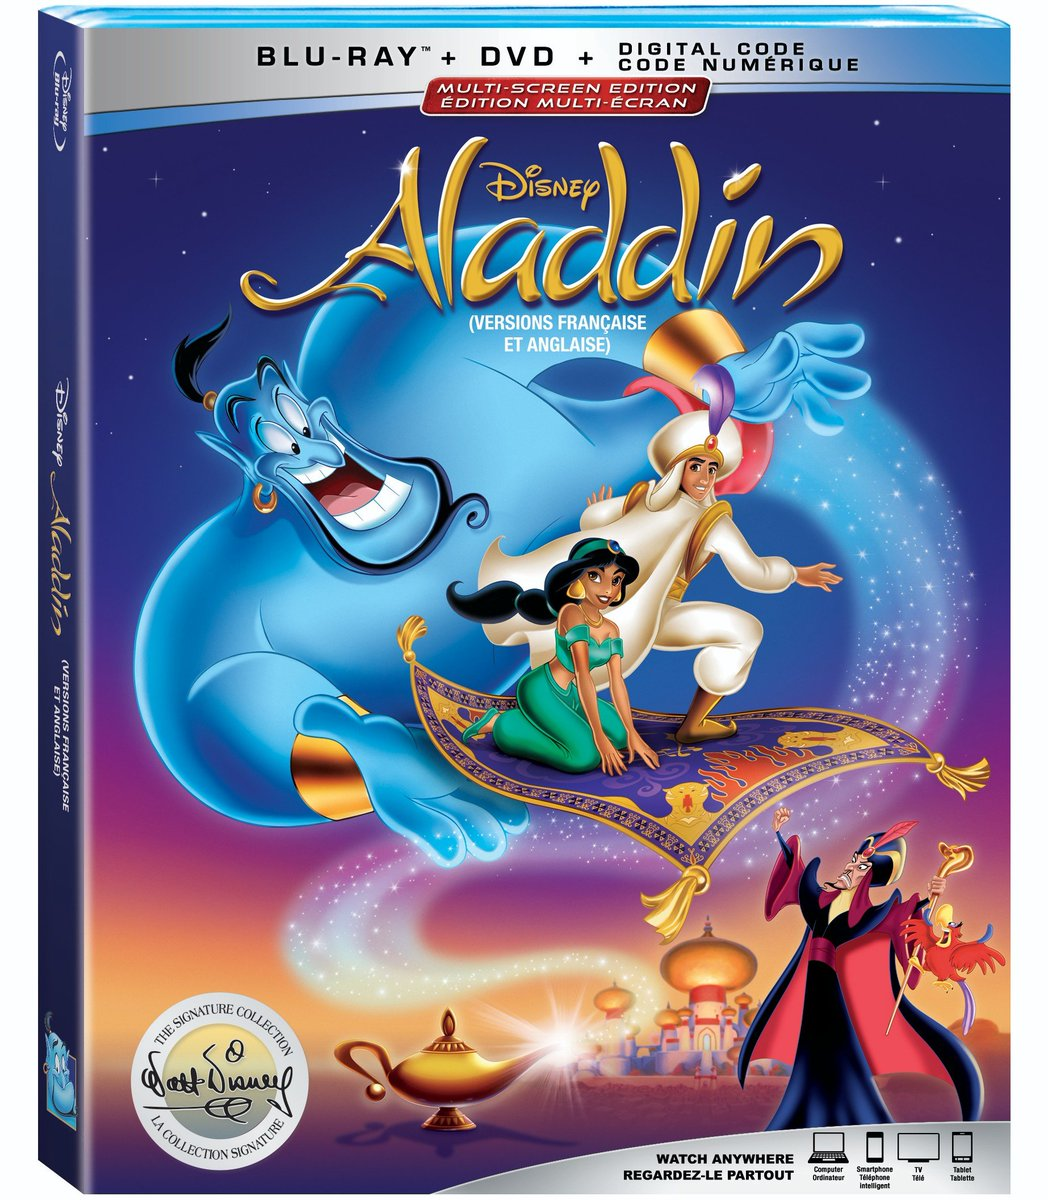 Make way for Prince Ali! Follow us + RT to enter to #win the Signature Edition of @Disney's animated classic, #Aladdin, plus the live-action adaptation starring Will Smith, both of which come to Blu-ray September 10! <br>http://pic.twitter.com/ZygTdiHl6t